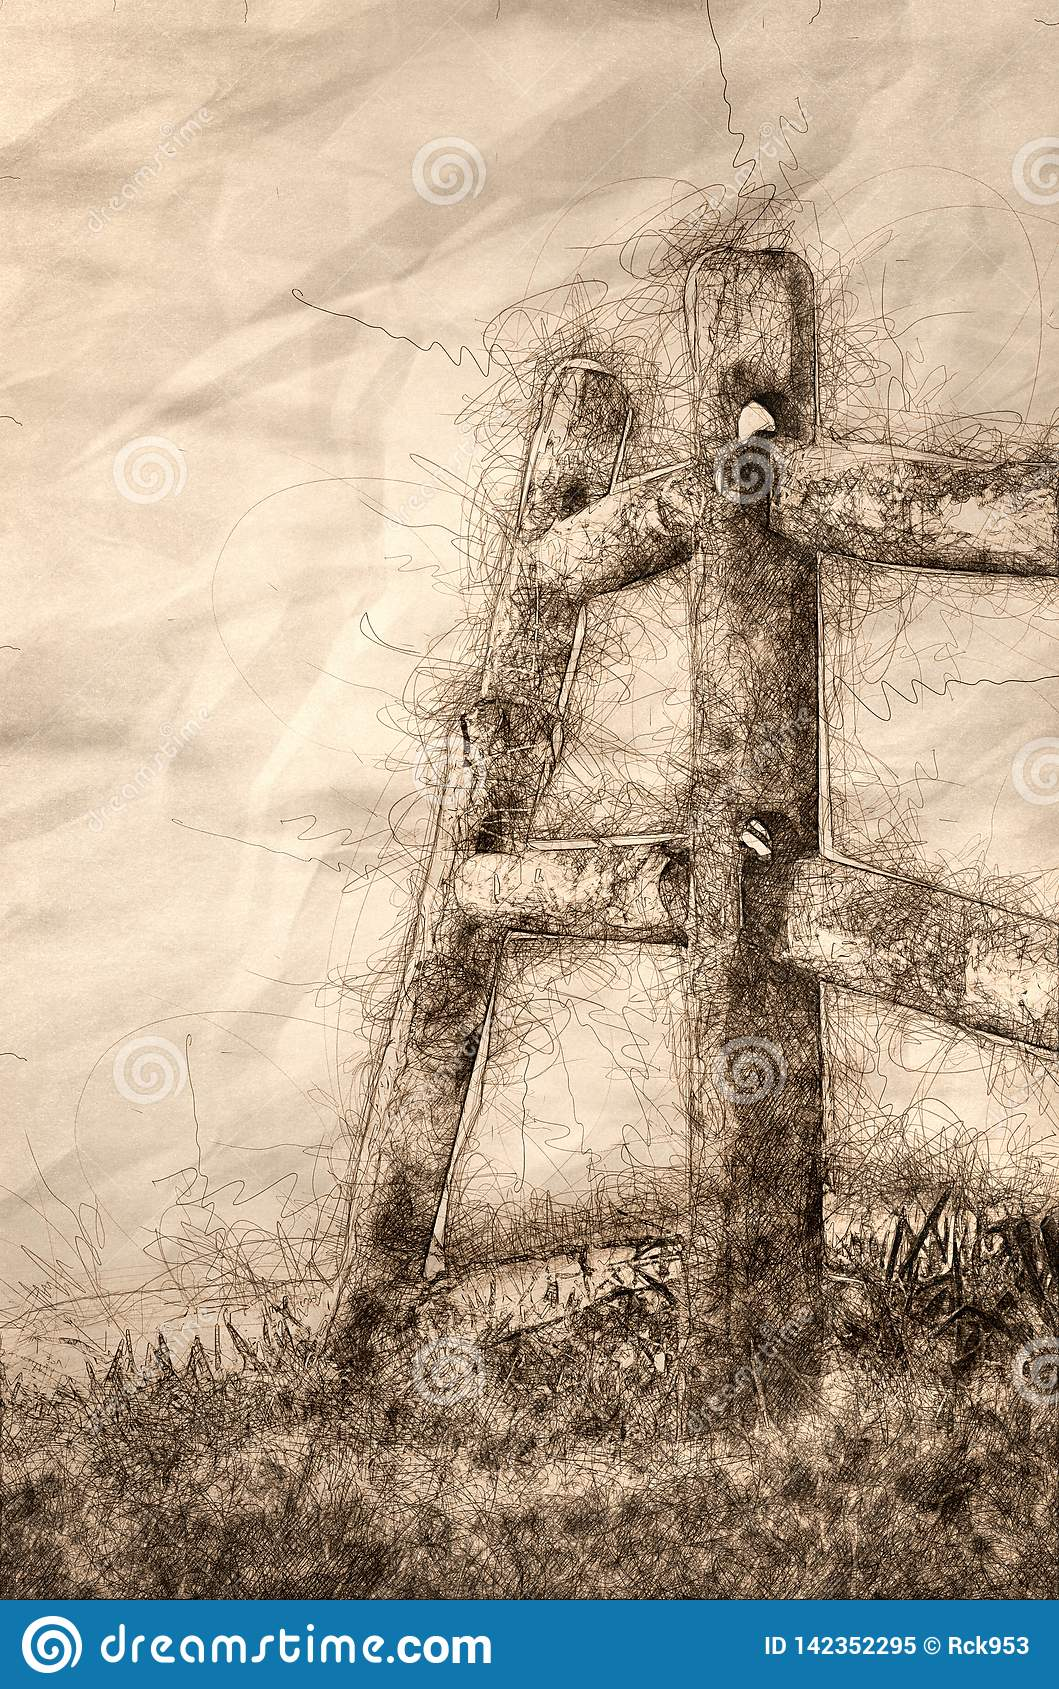 Sketch of a Wooden Rail Fence on a Foggy Spring Morning